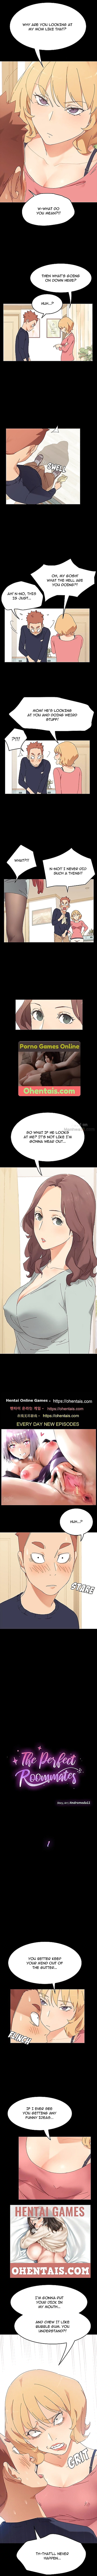 PERFECT ROOMMATES Ch. 1 English